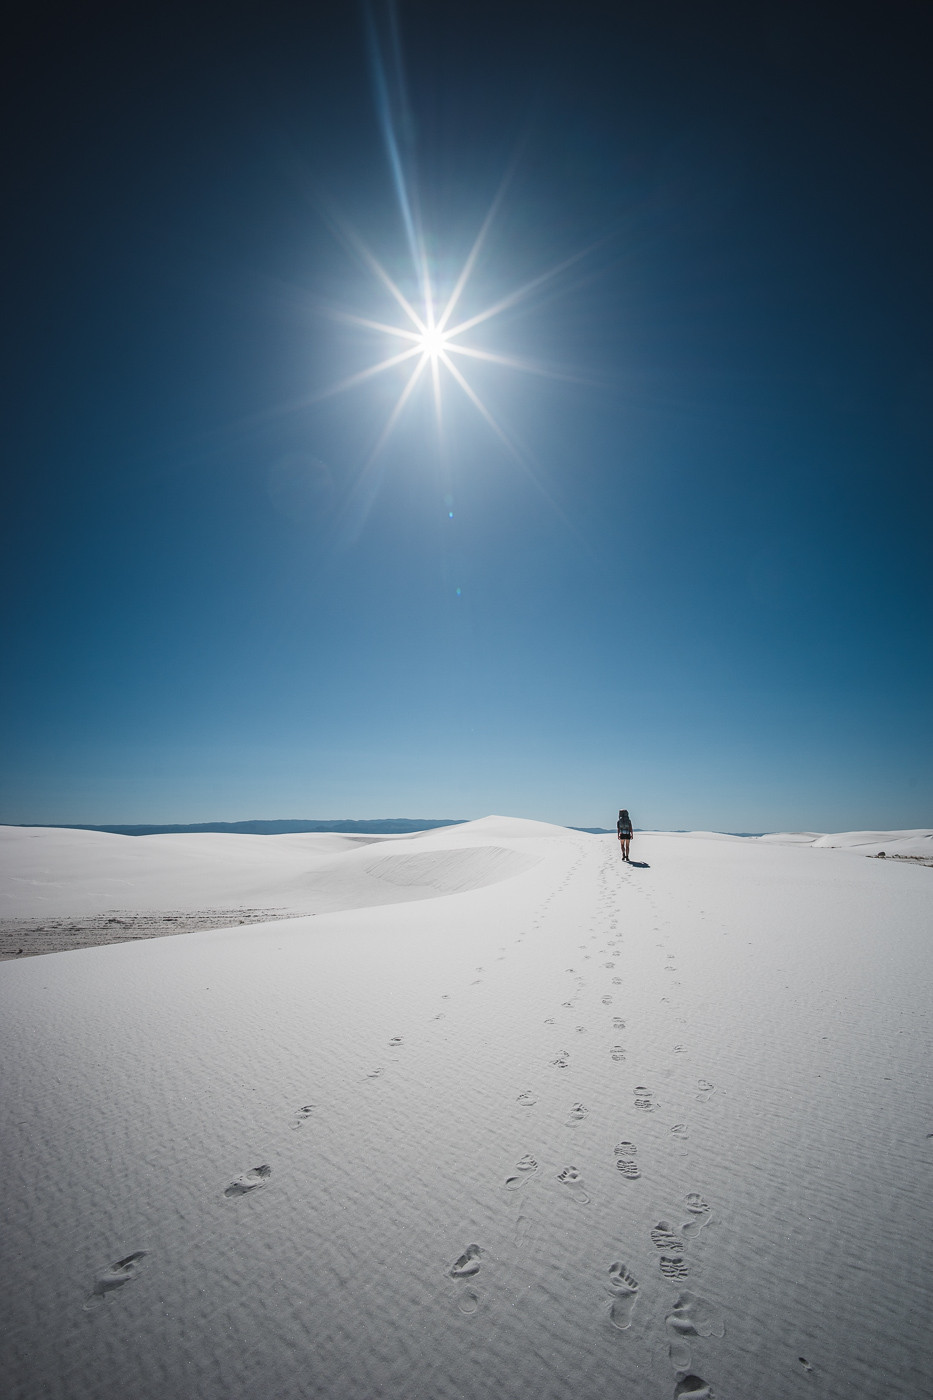 White Sands National Monument, NM. Voigtlander Heliar 15mm/4.5, a7II, f/11, 1/640th, ISO 100, Full Resolution (9.4MB)